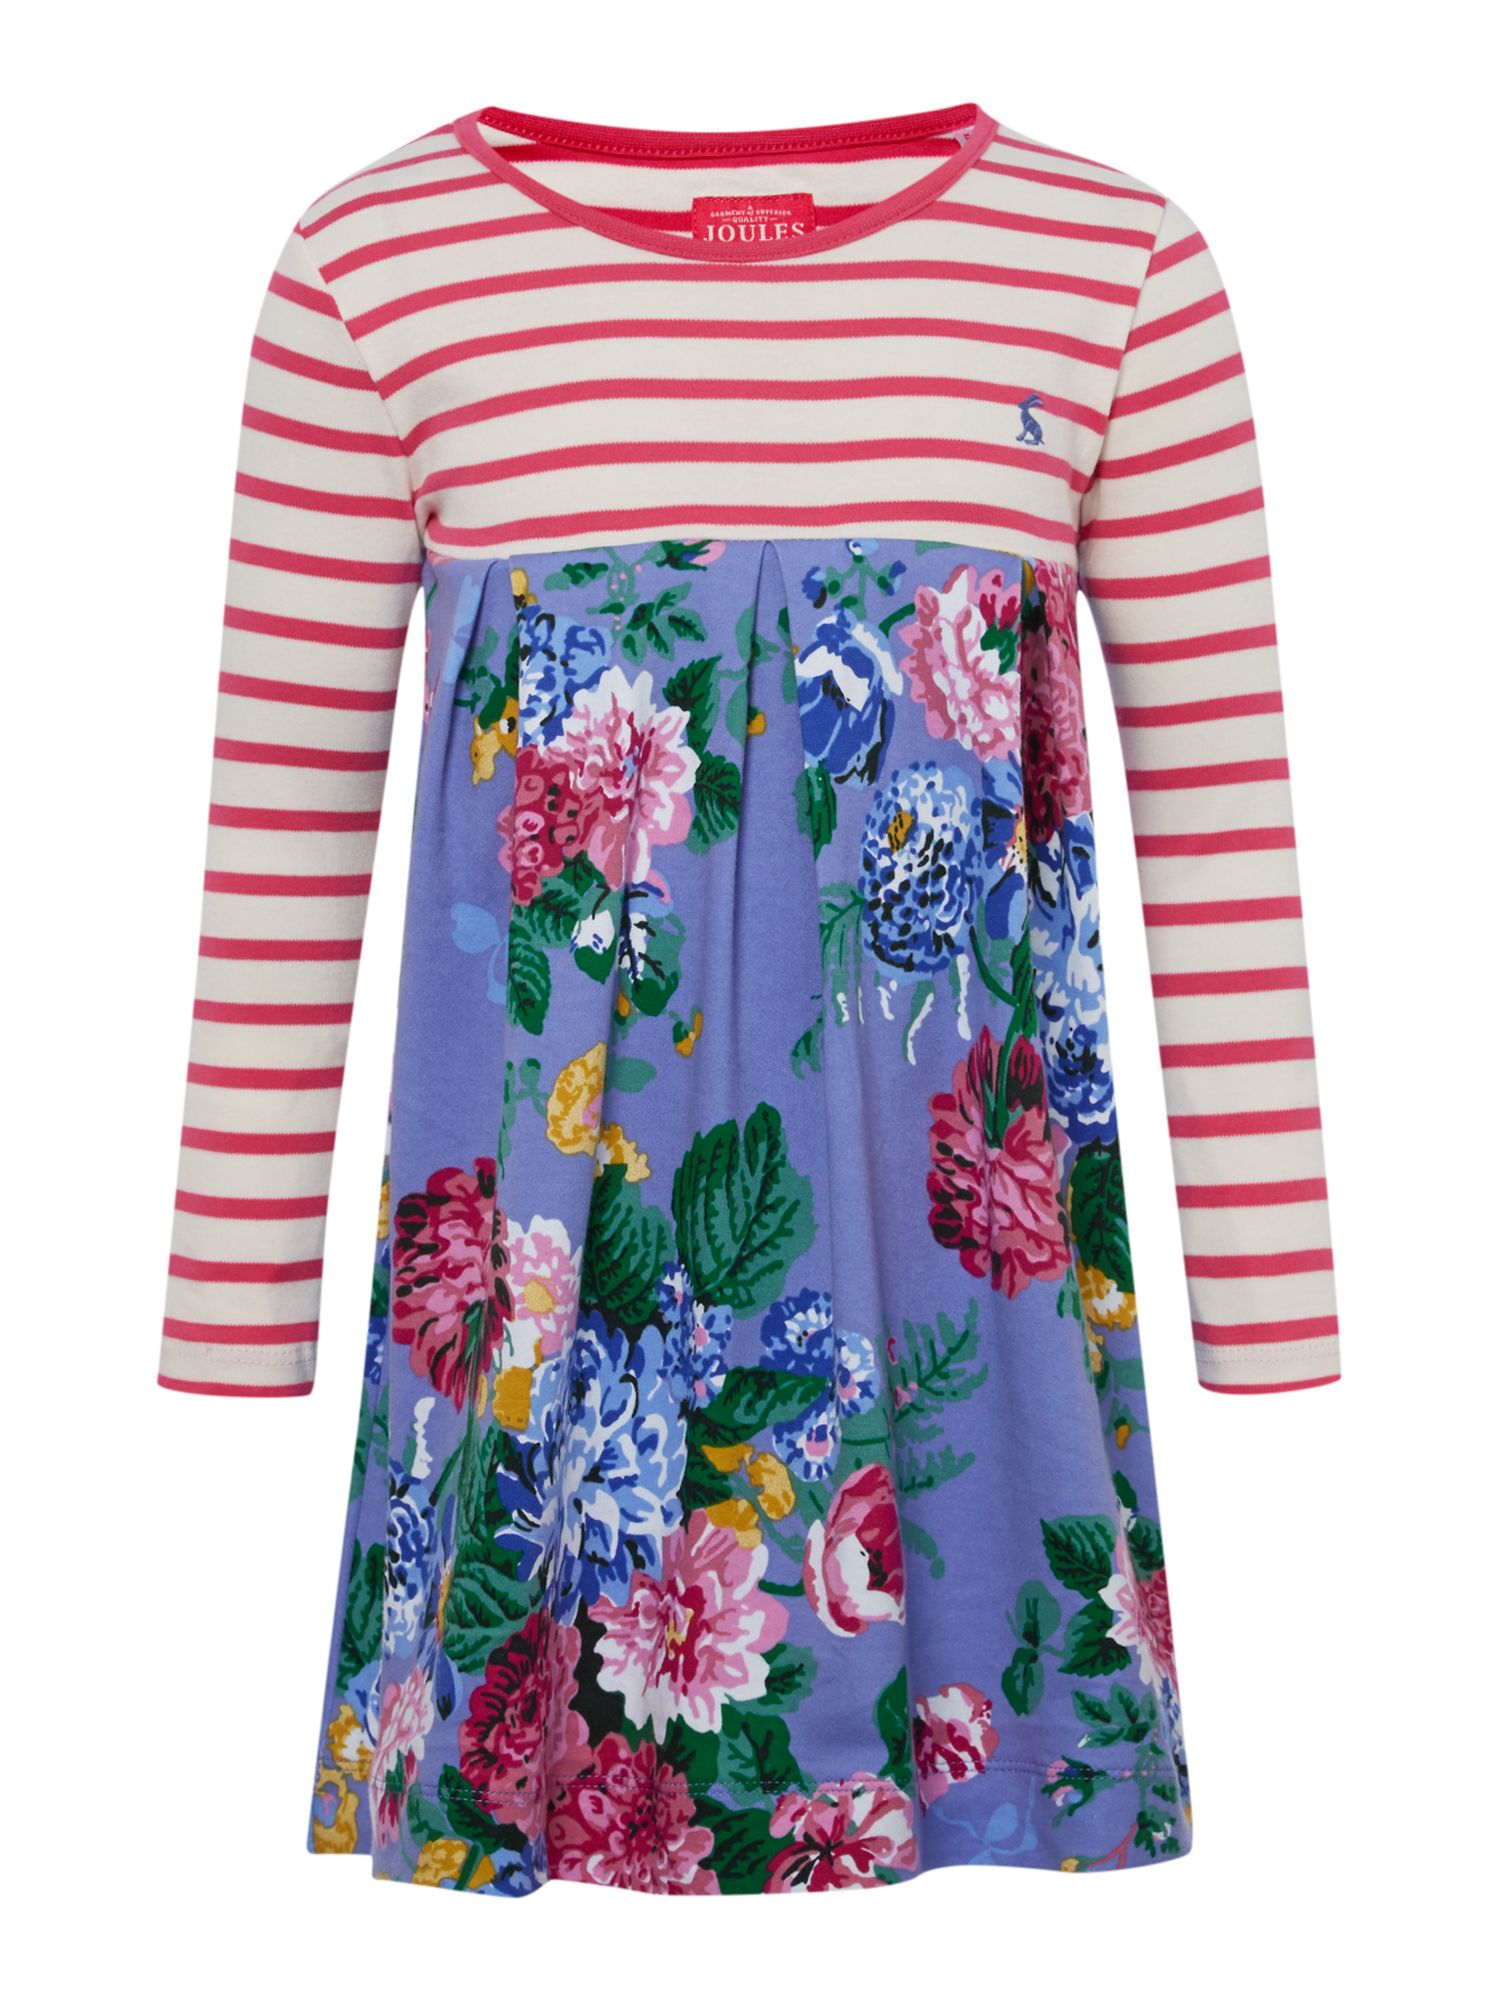 Girls floral print dress with striped top